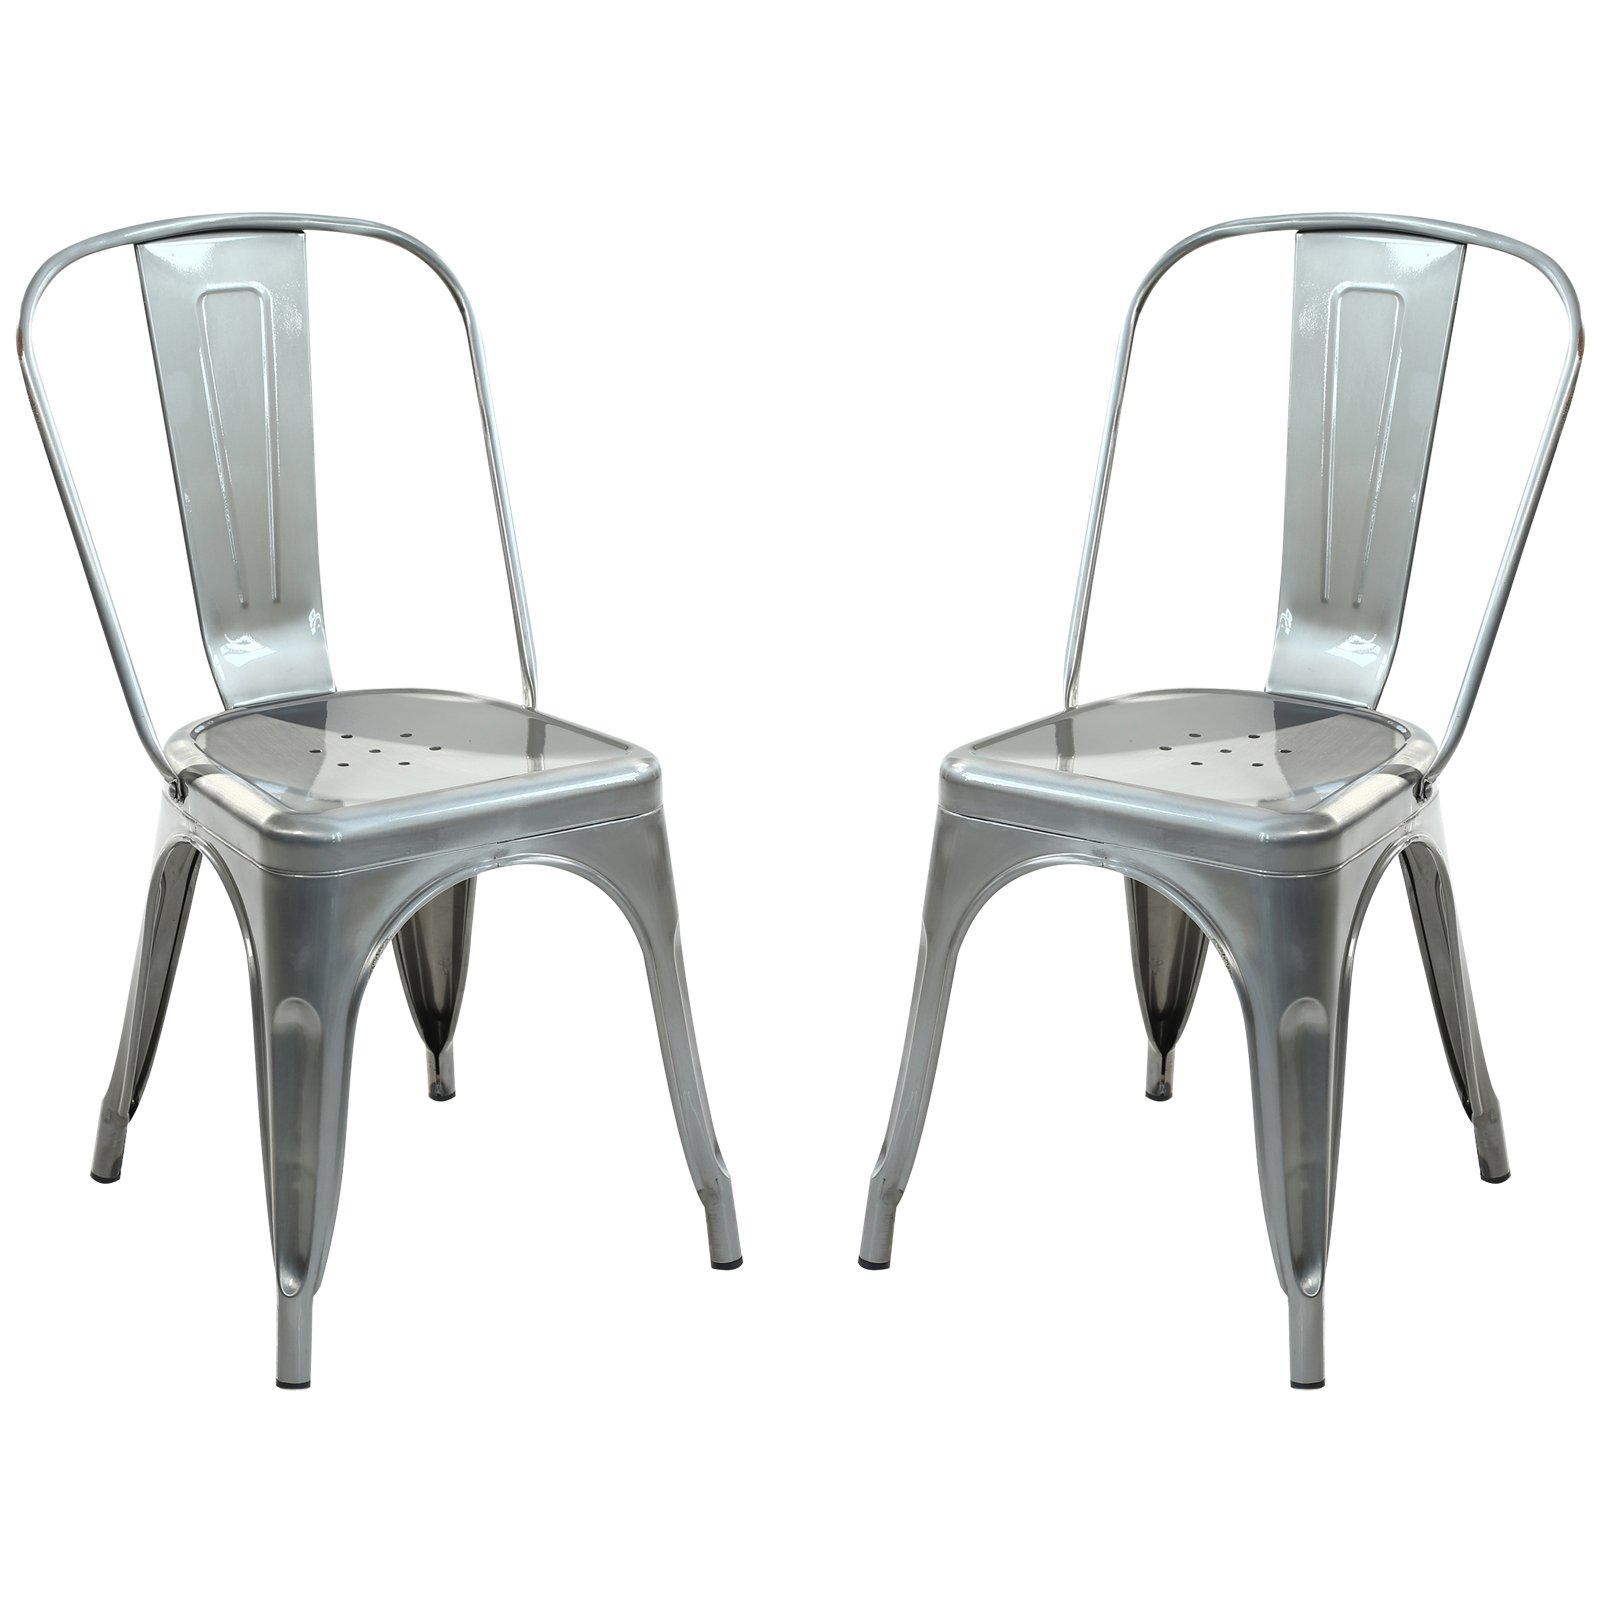 Poly and Bark Trattoria Side Chair in Polished Gunmetal (Set of 2)